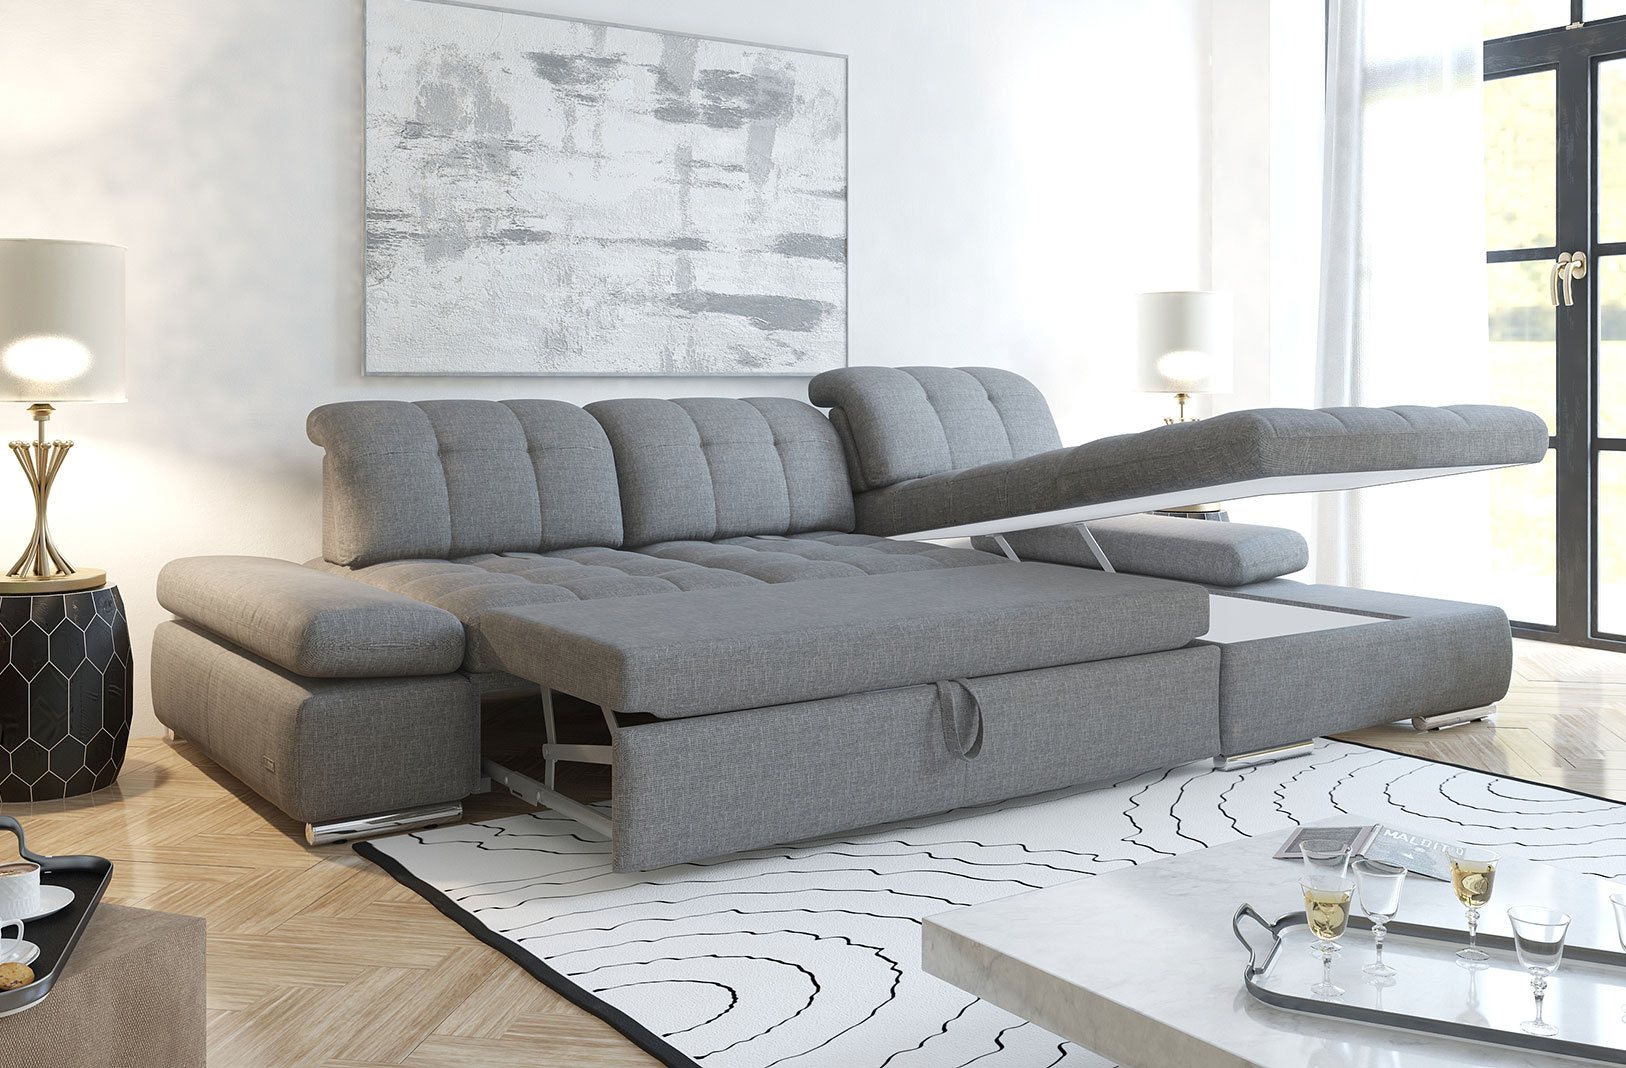 Alpine Sectional Sofa Bed and Storage - photo №14